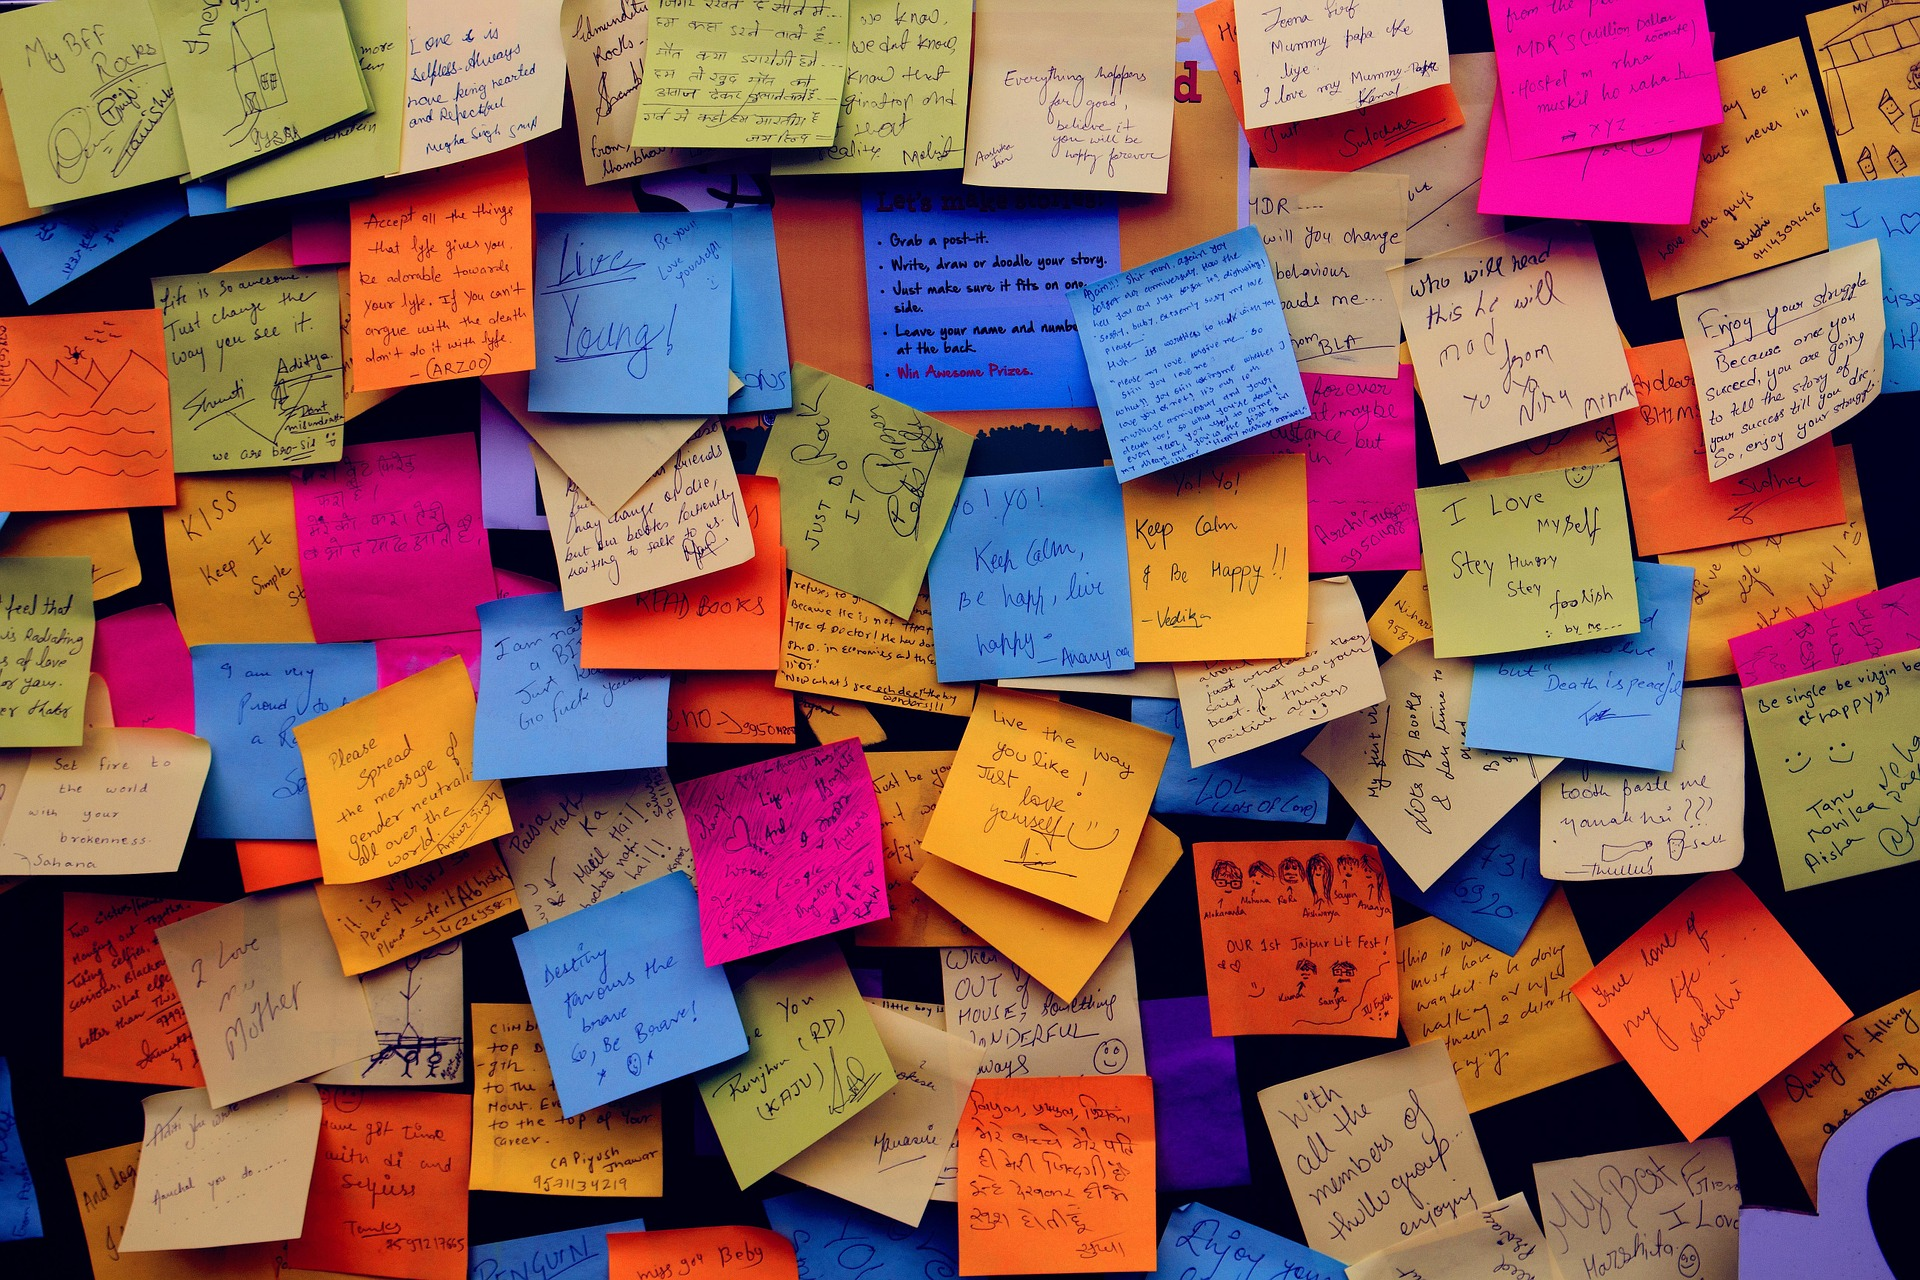 Wall of colorful sticky notes - link to time to talk section